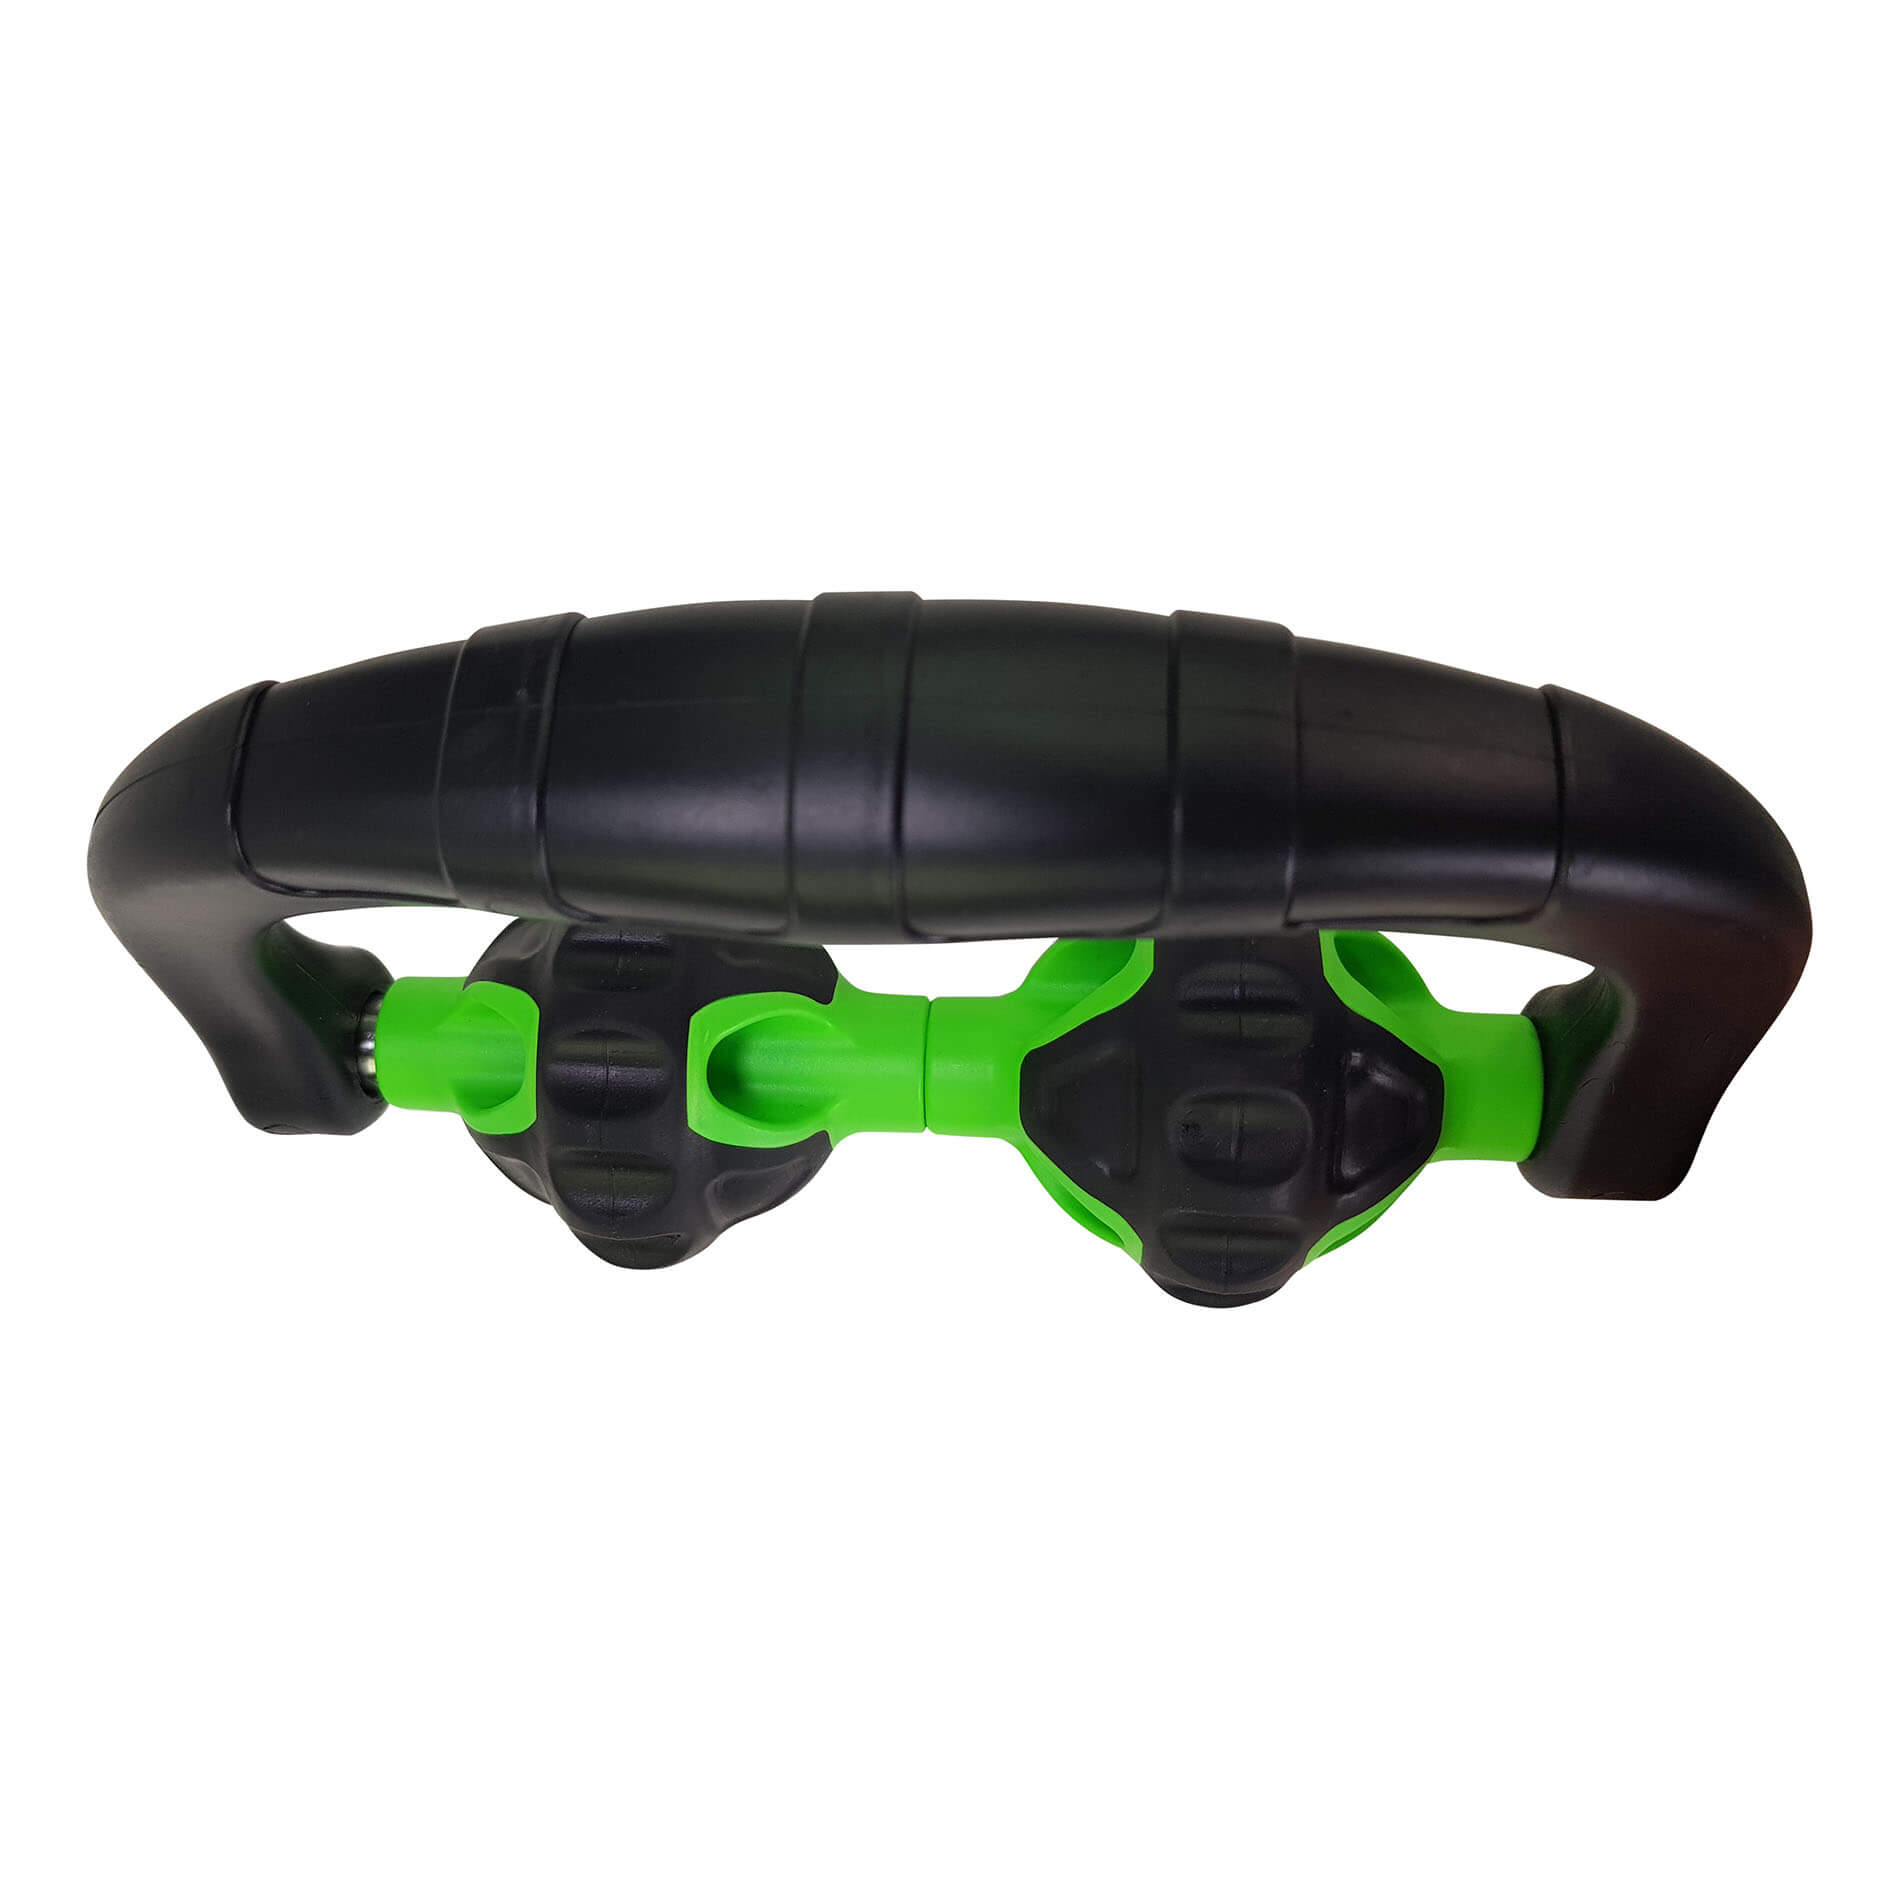 Double Spier Roller Ball - massage roller